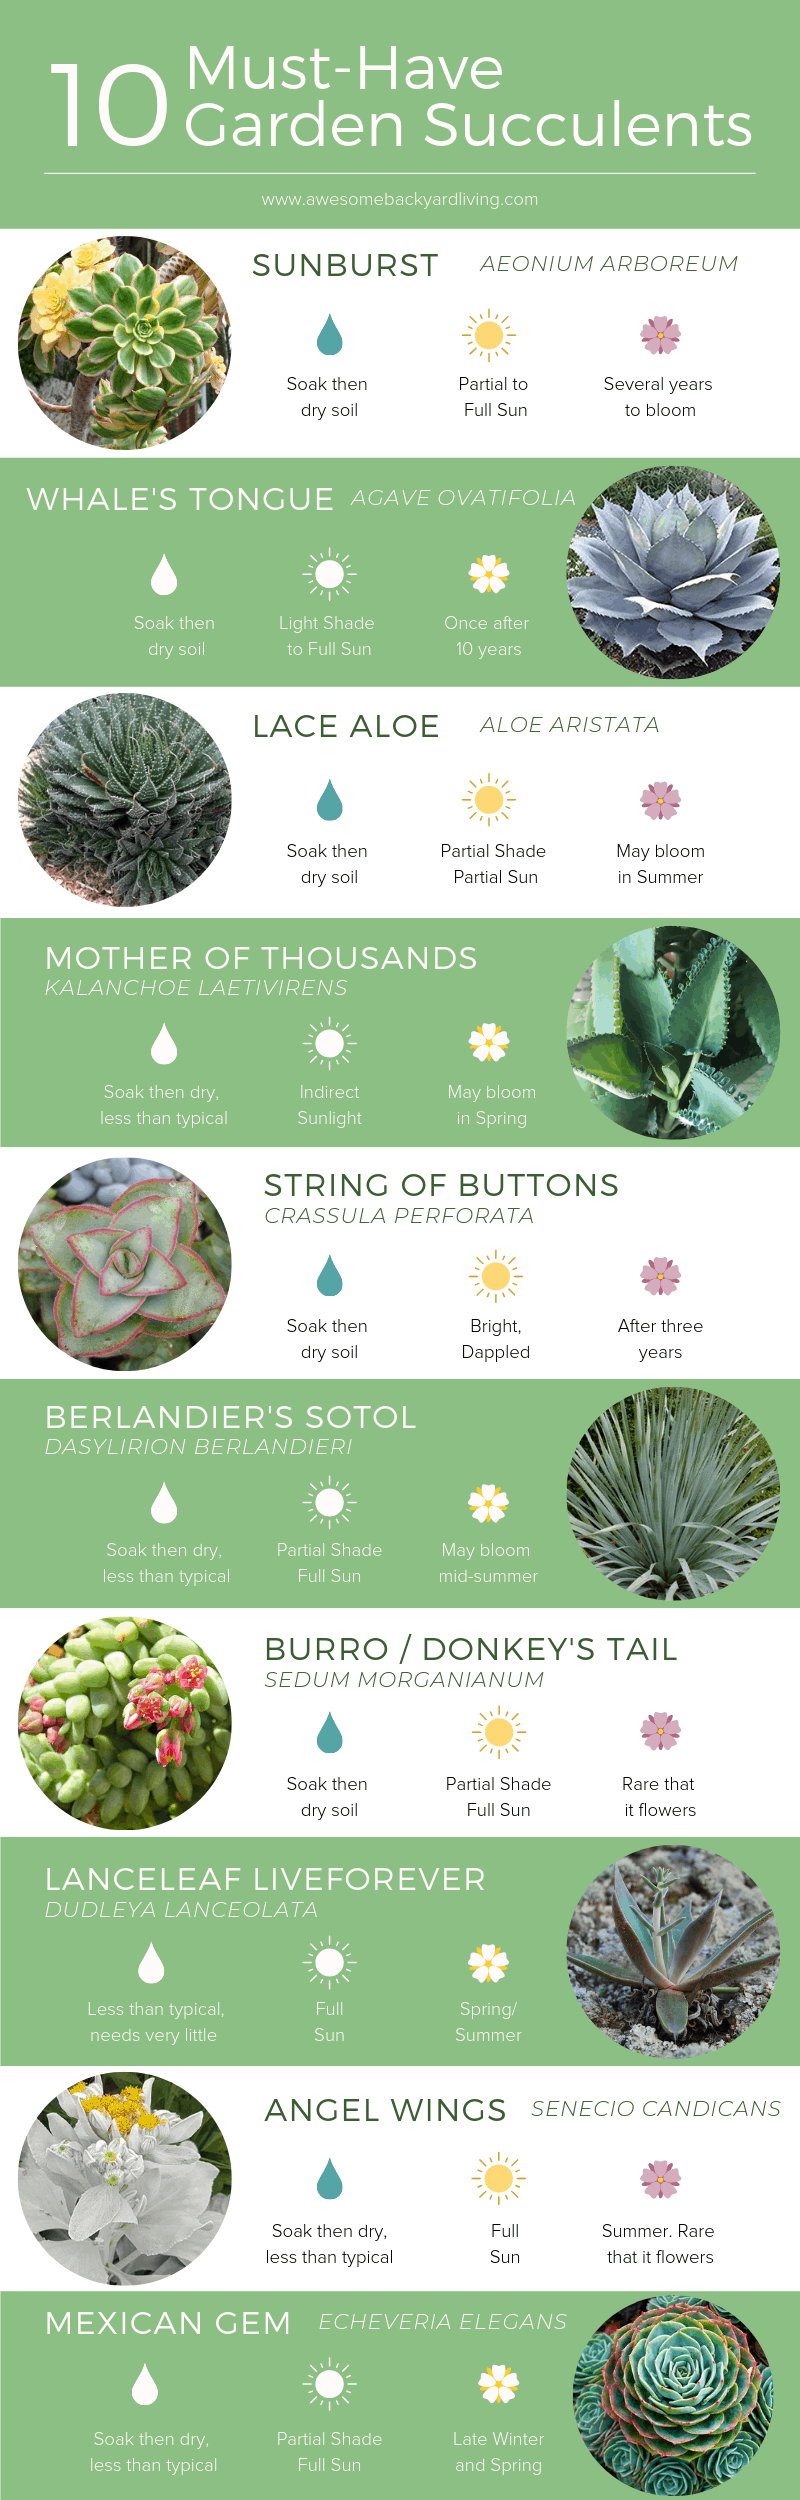 Succulents-Infographic 1